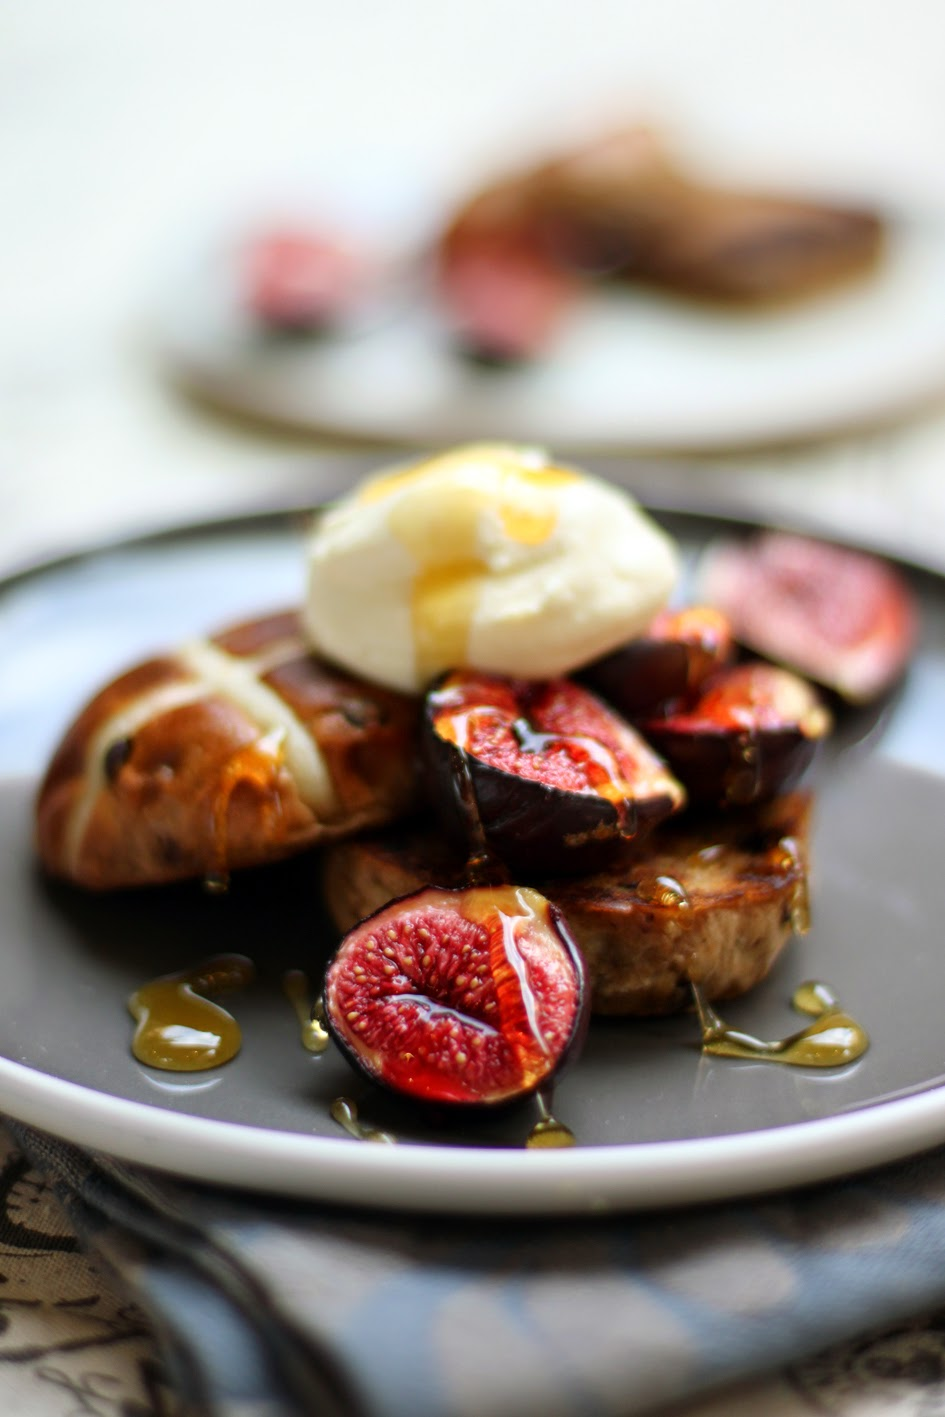 ... grill pin it grilled figs with honeyed dessert recipe grilled figs